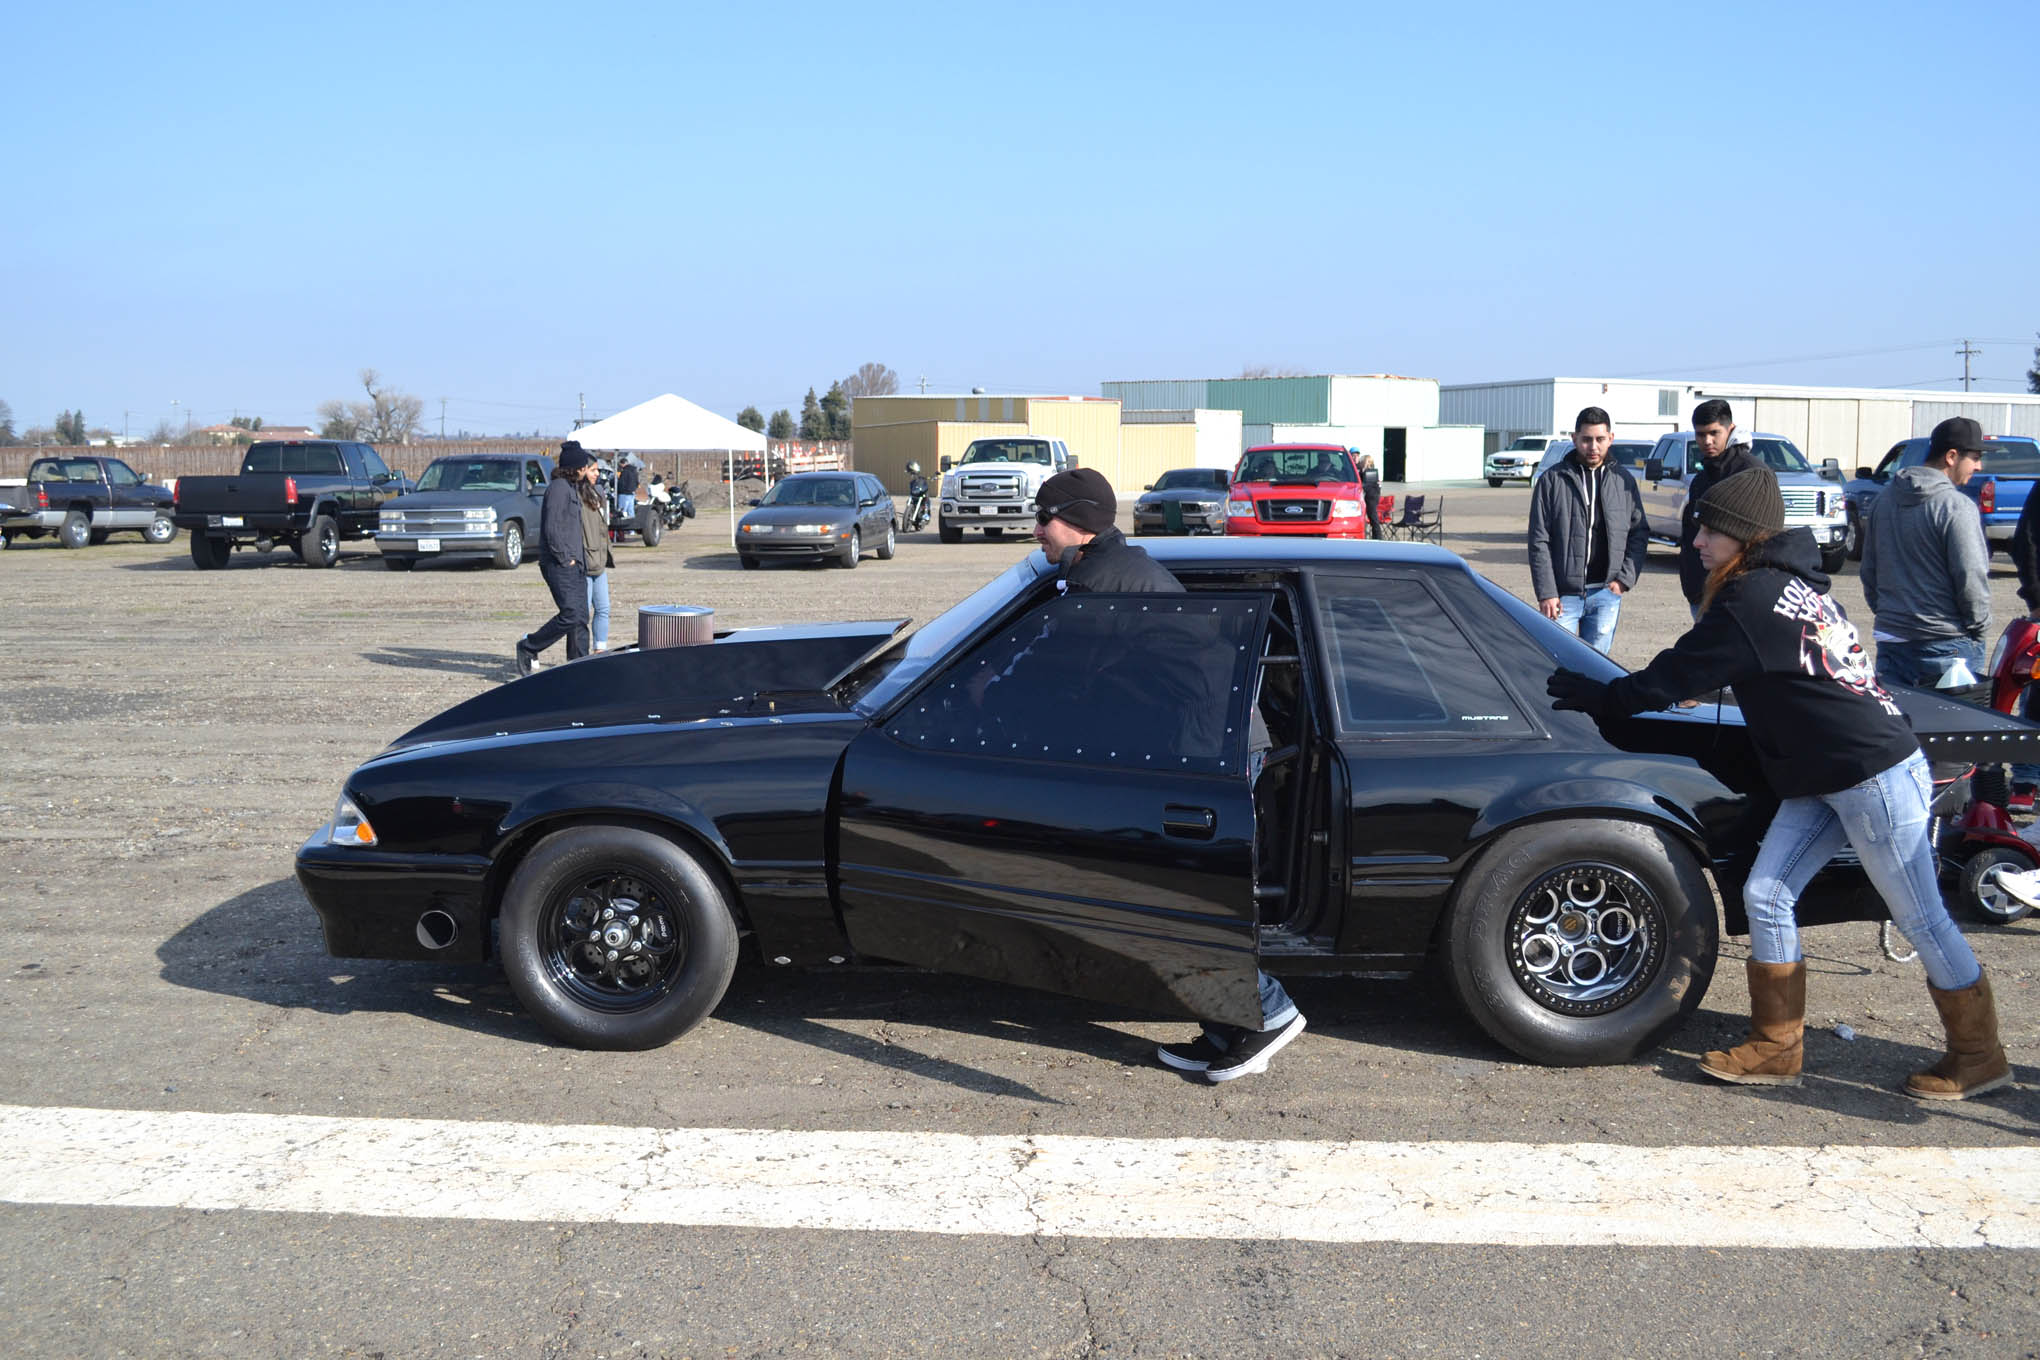 Another mean vehicle in attendance was this Darth Vader–looking Mustang. The owner indicated that it was very light and powered by a small-block Ford with nitrous. His strategy for racing was simple: if it feels good, turn on one kit; if that hooks, turn on the second kit. We like it.